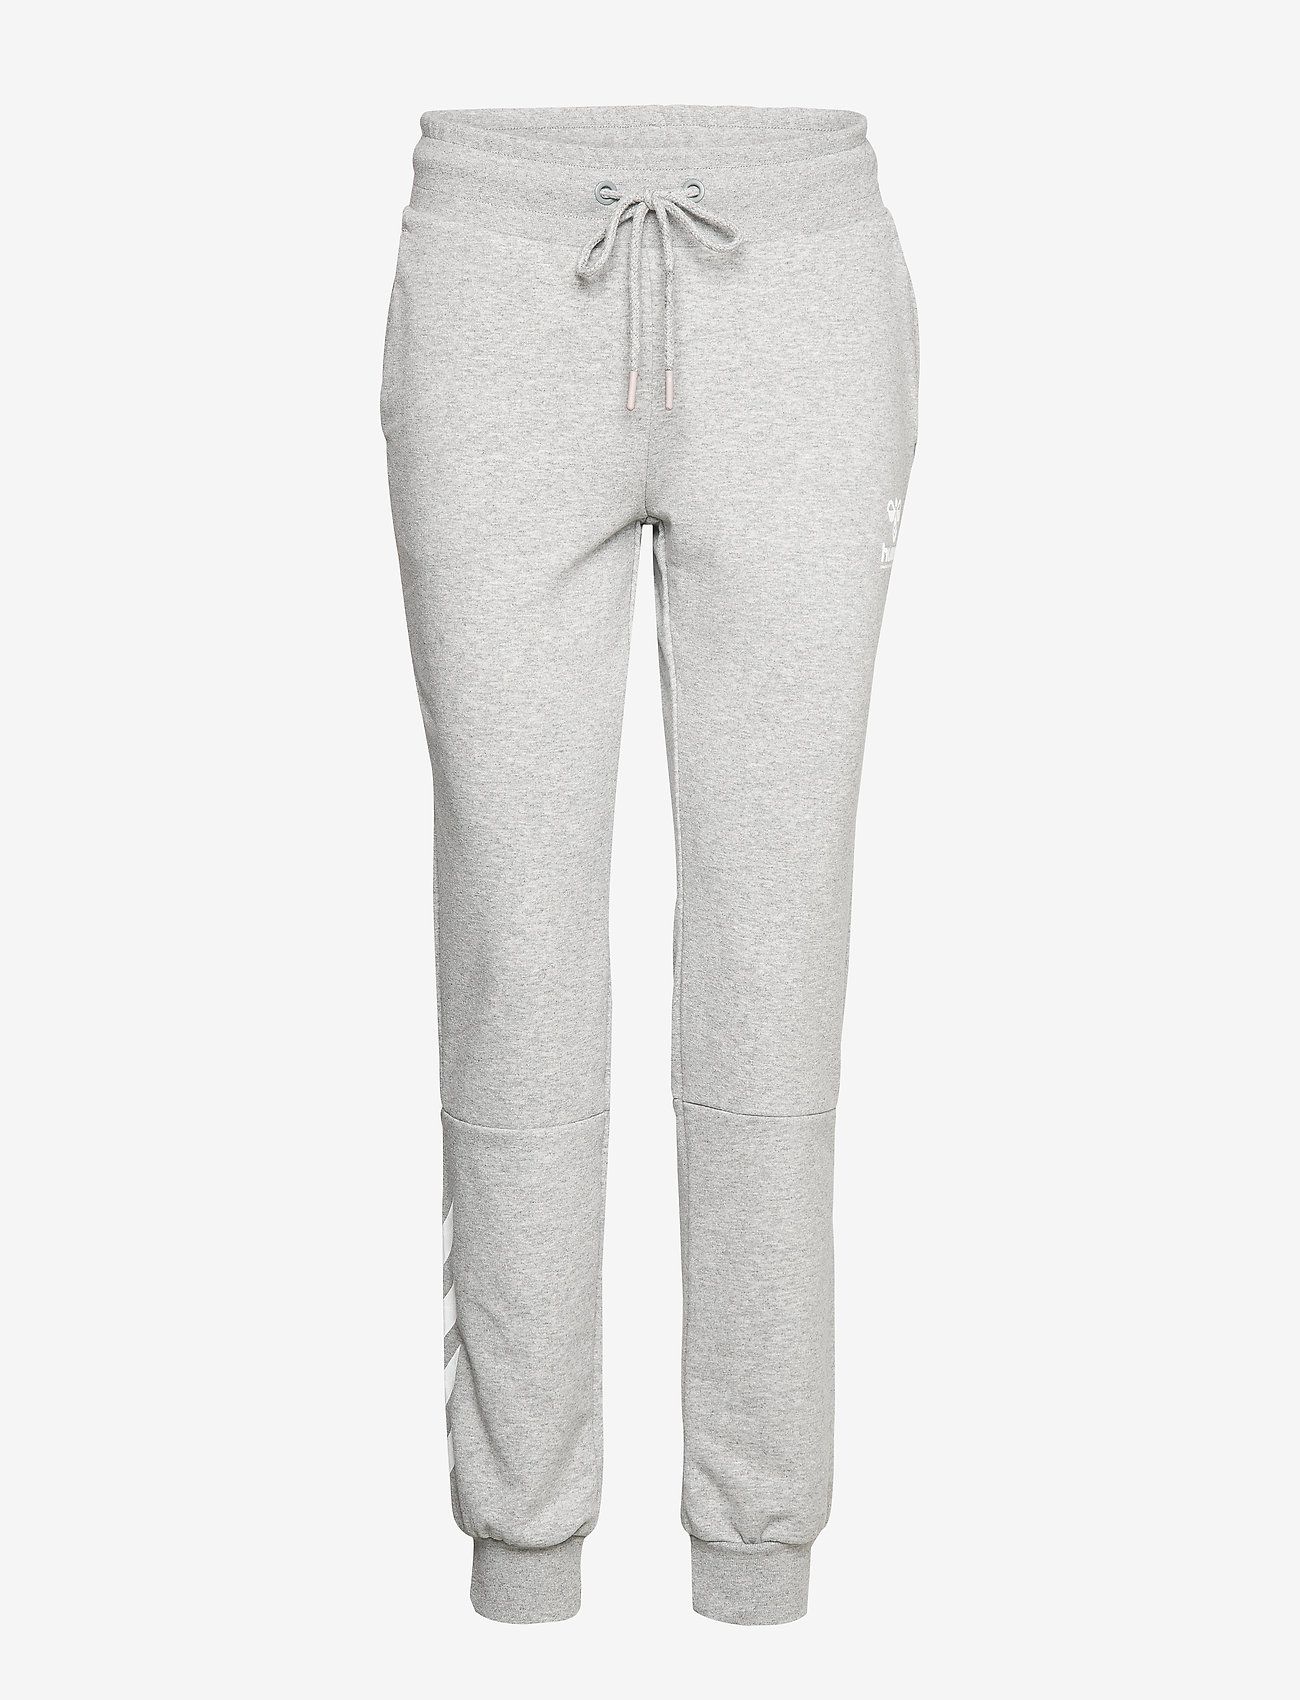 Hummel - hmlNONI REGULAR PANTS - bukser - grey melange - 0